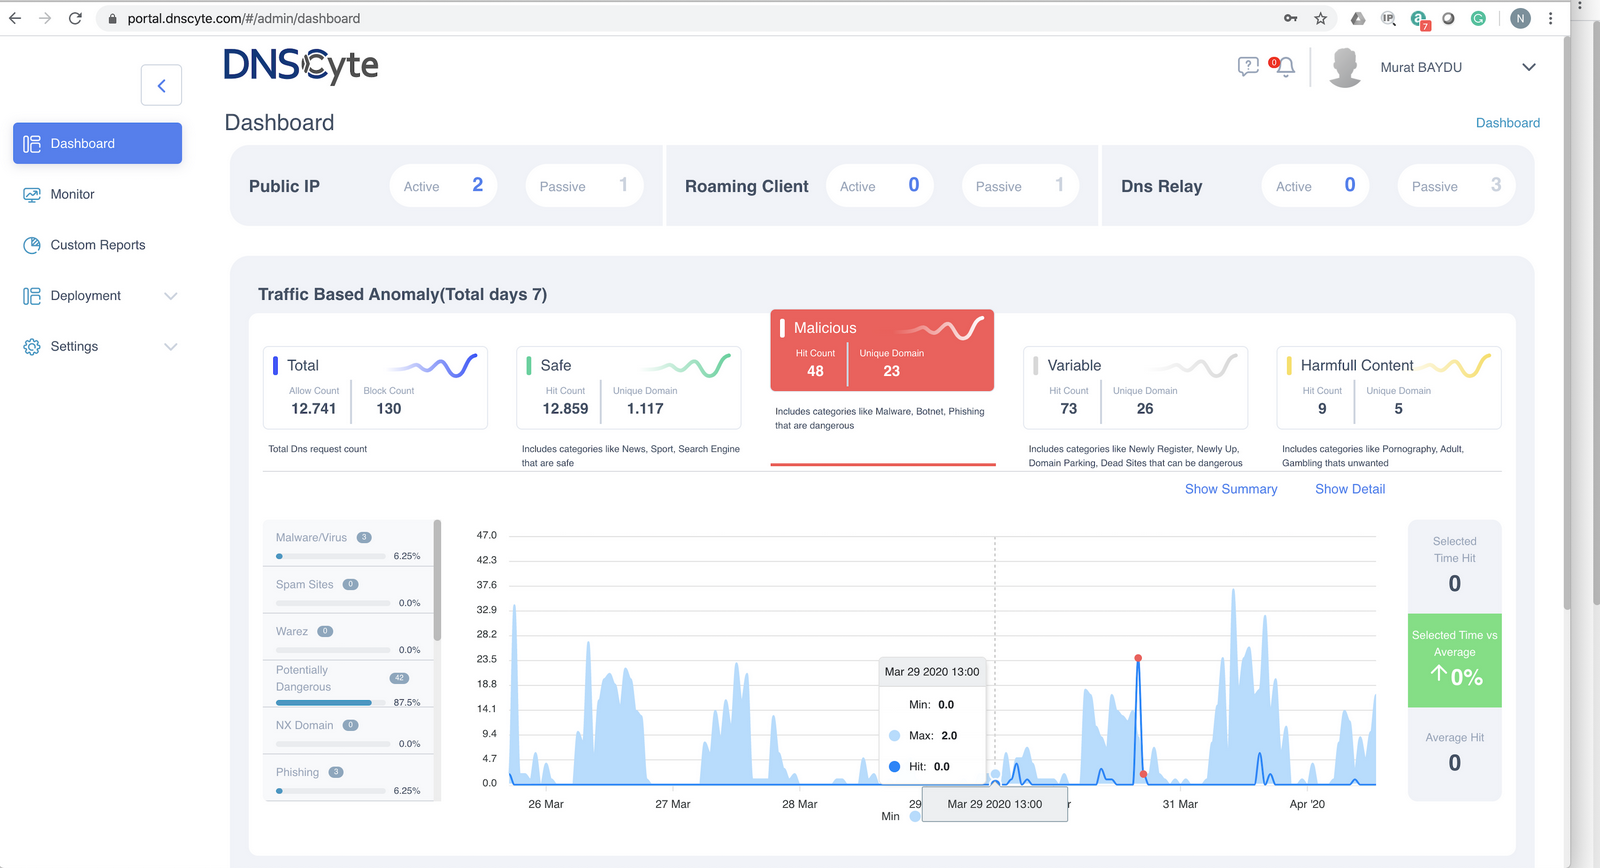 DNSCyte dashboard